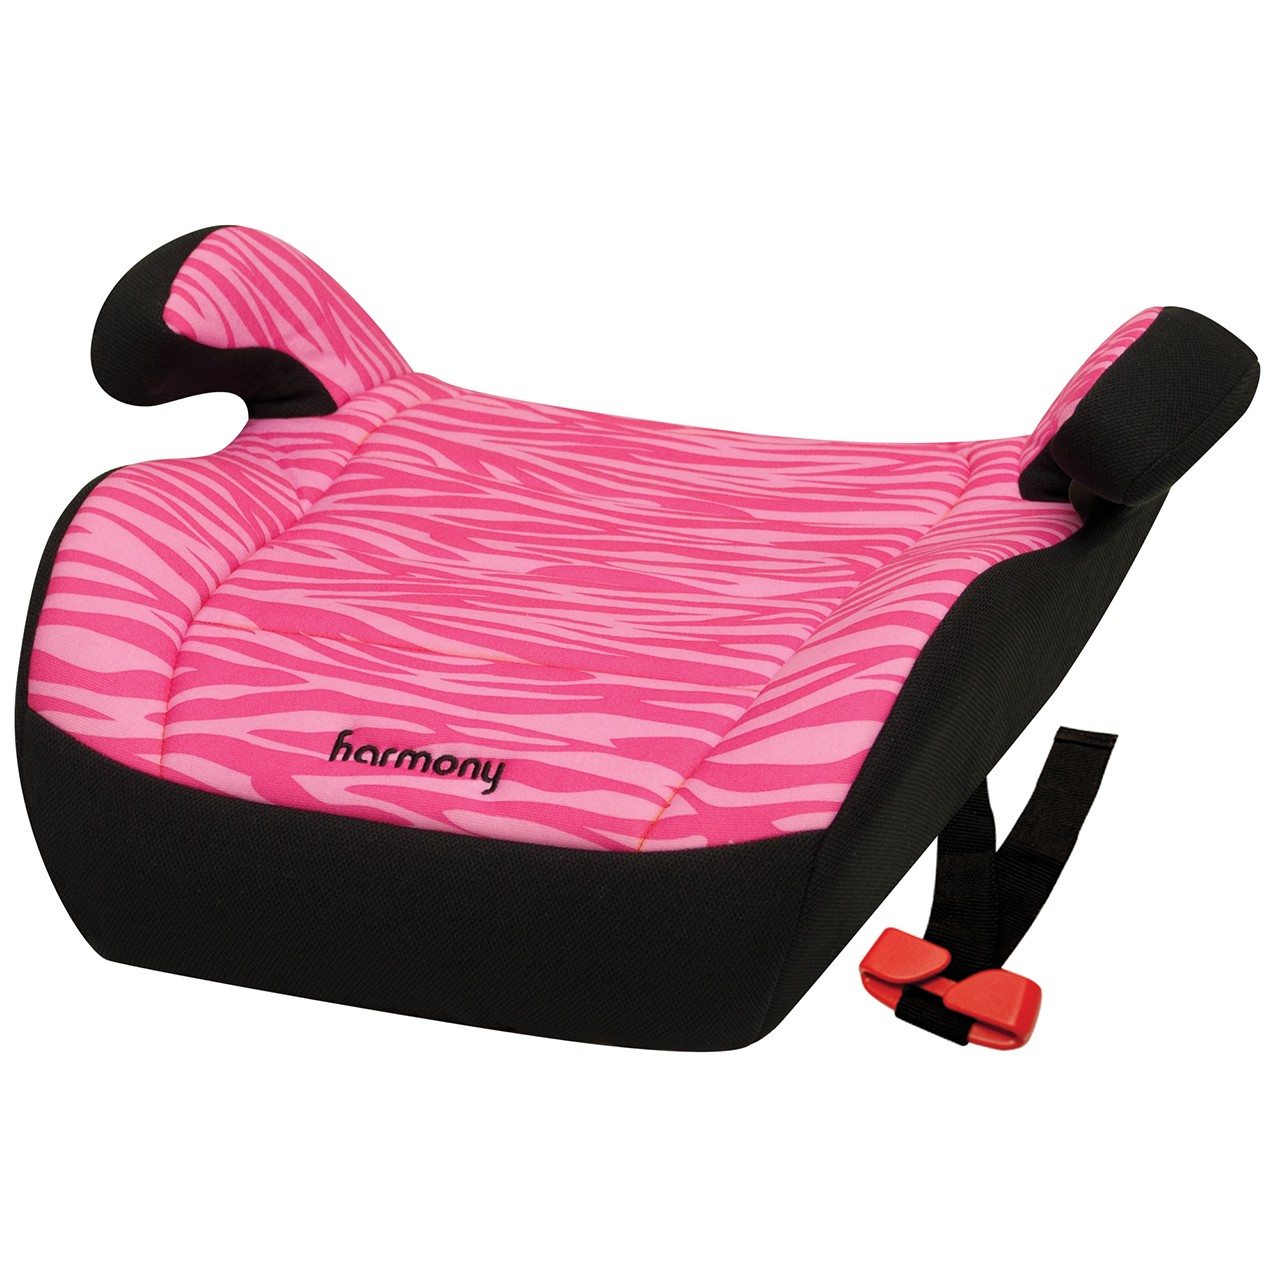 Youth Booster Car Seat - Pink Zebra - No Back Booster Seats - Products